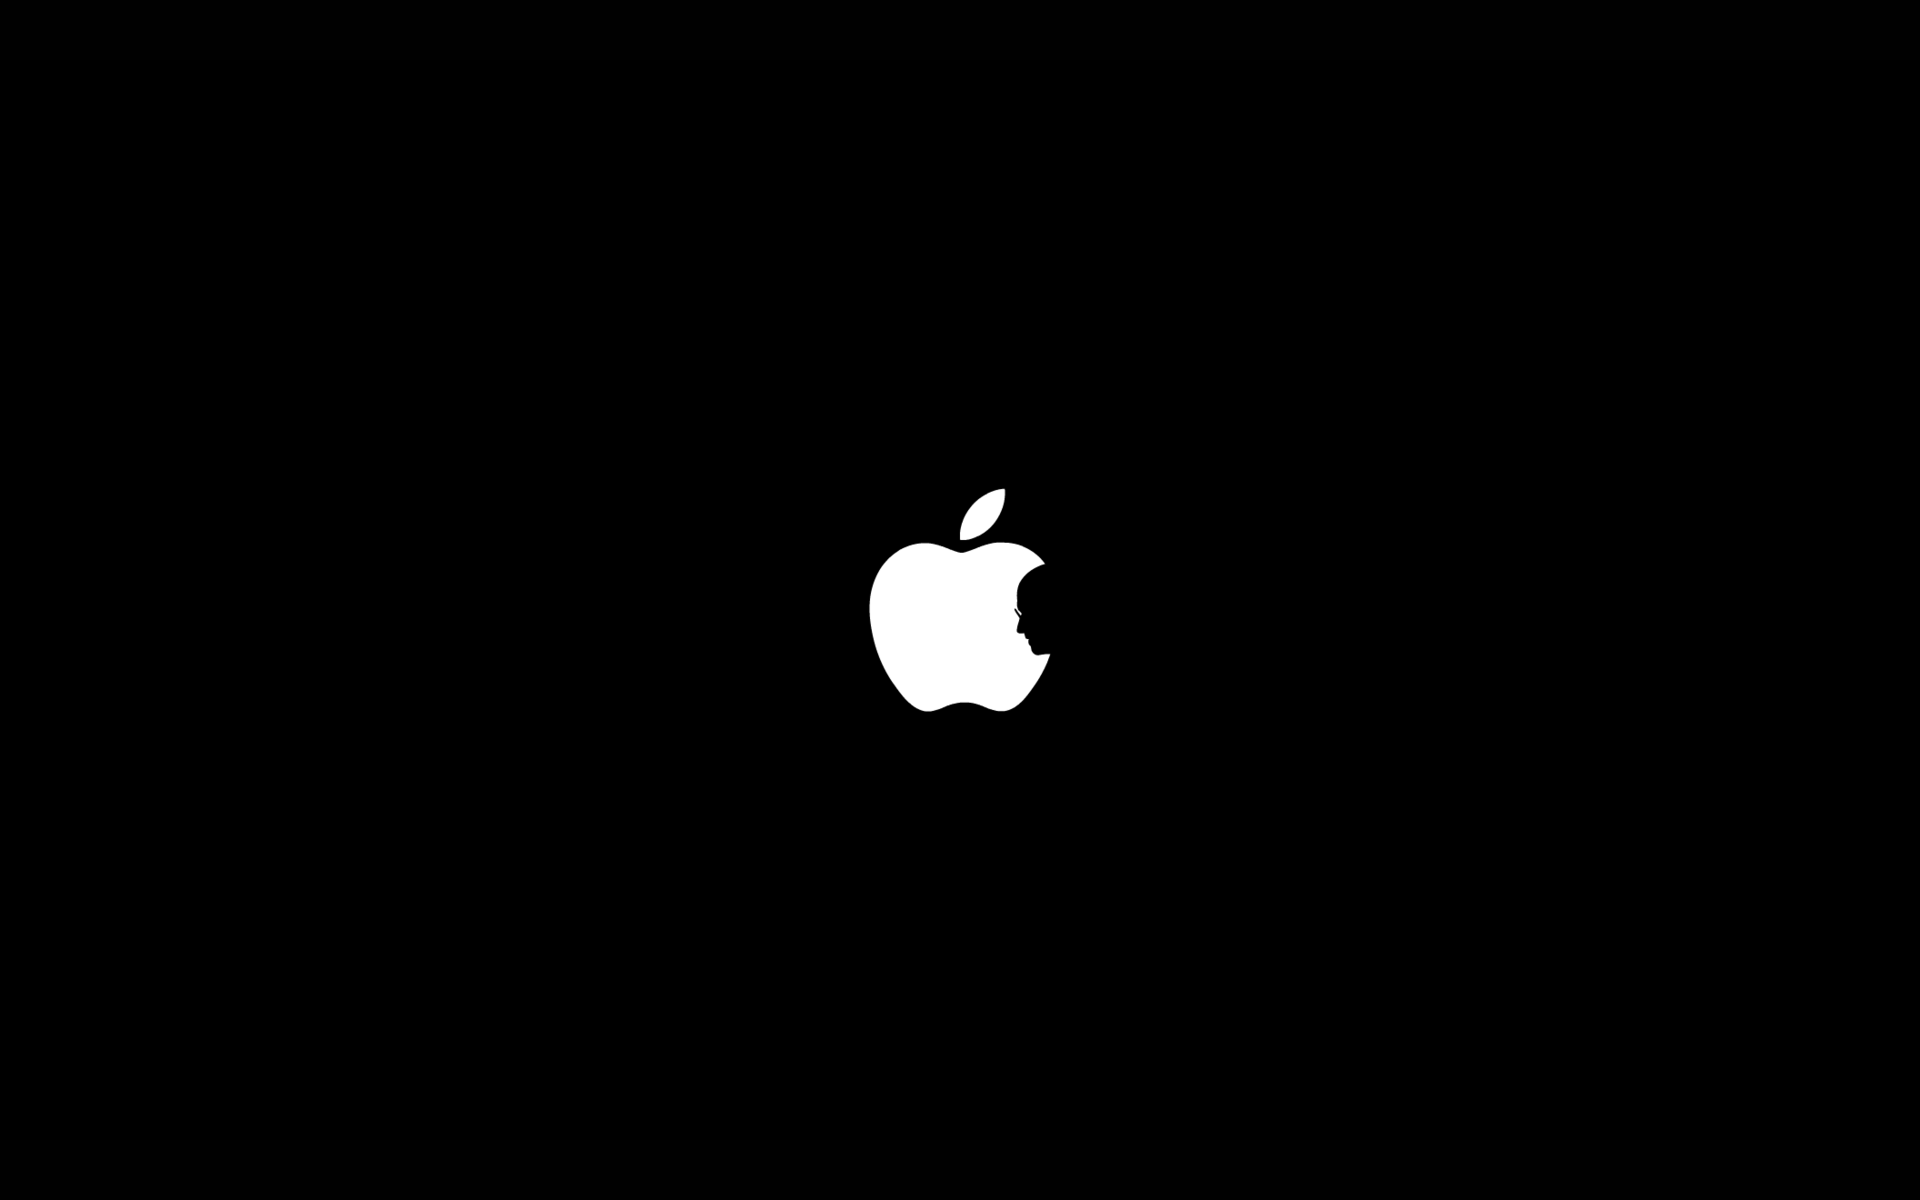 Apple Logo Computer HD Photo 1920x1200